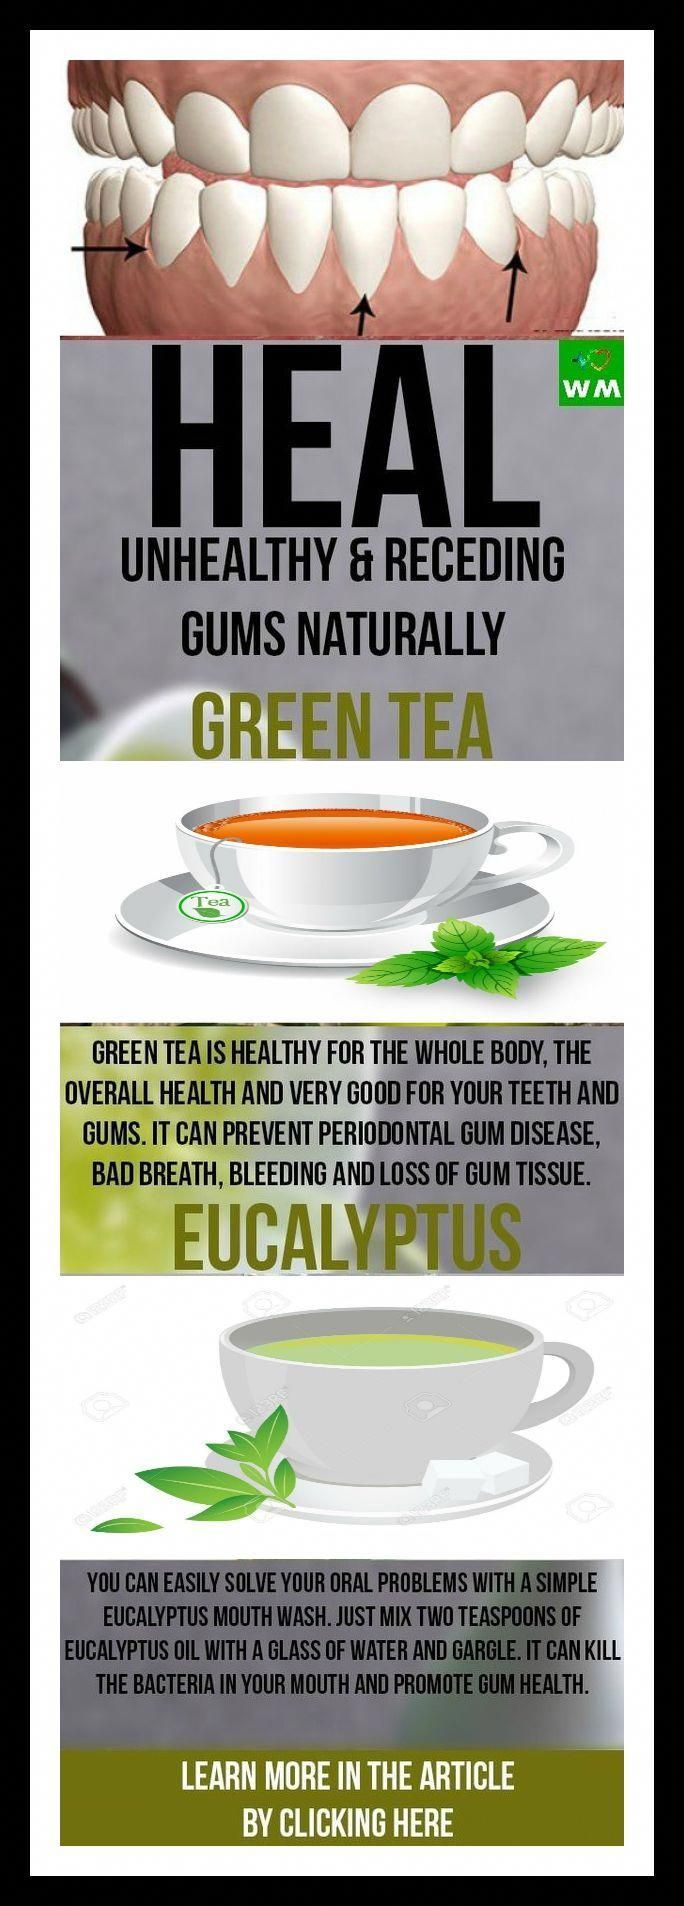 Heal Unhealthy & Receding Gums Naturally #health #fitness #recedinggreentea #homeremedies #healthygu...